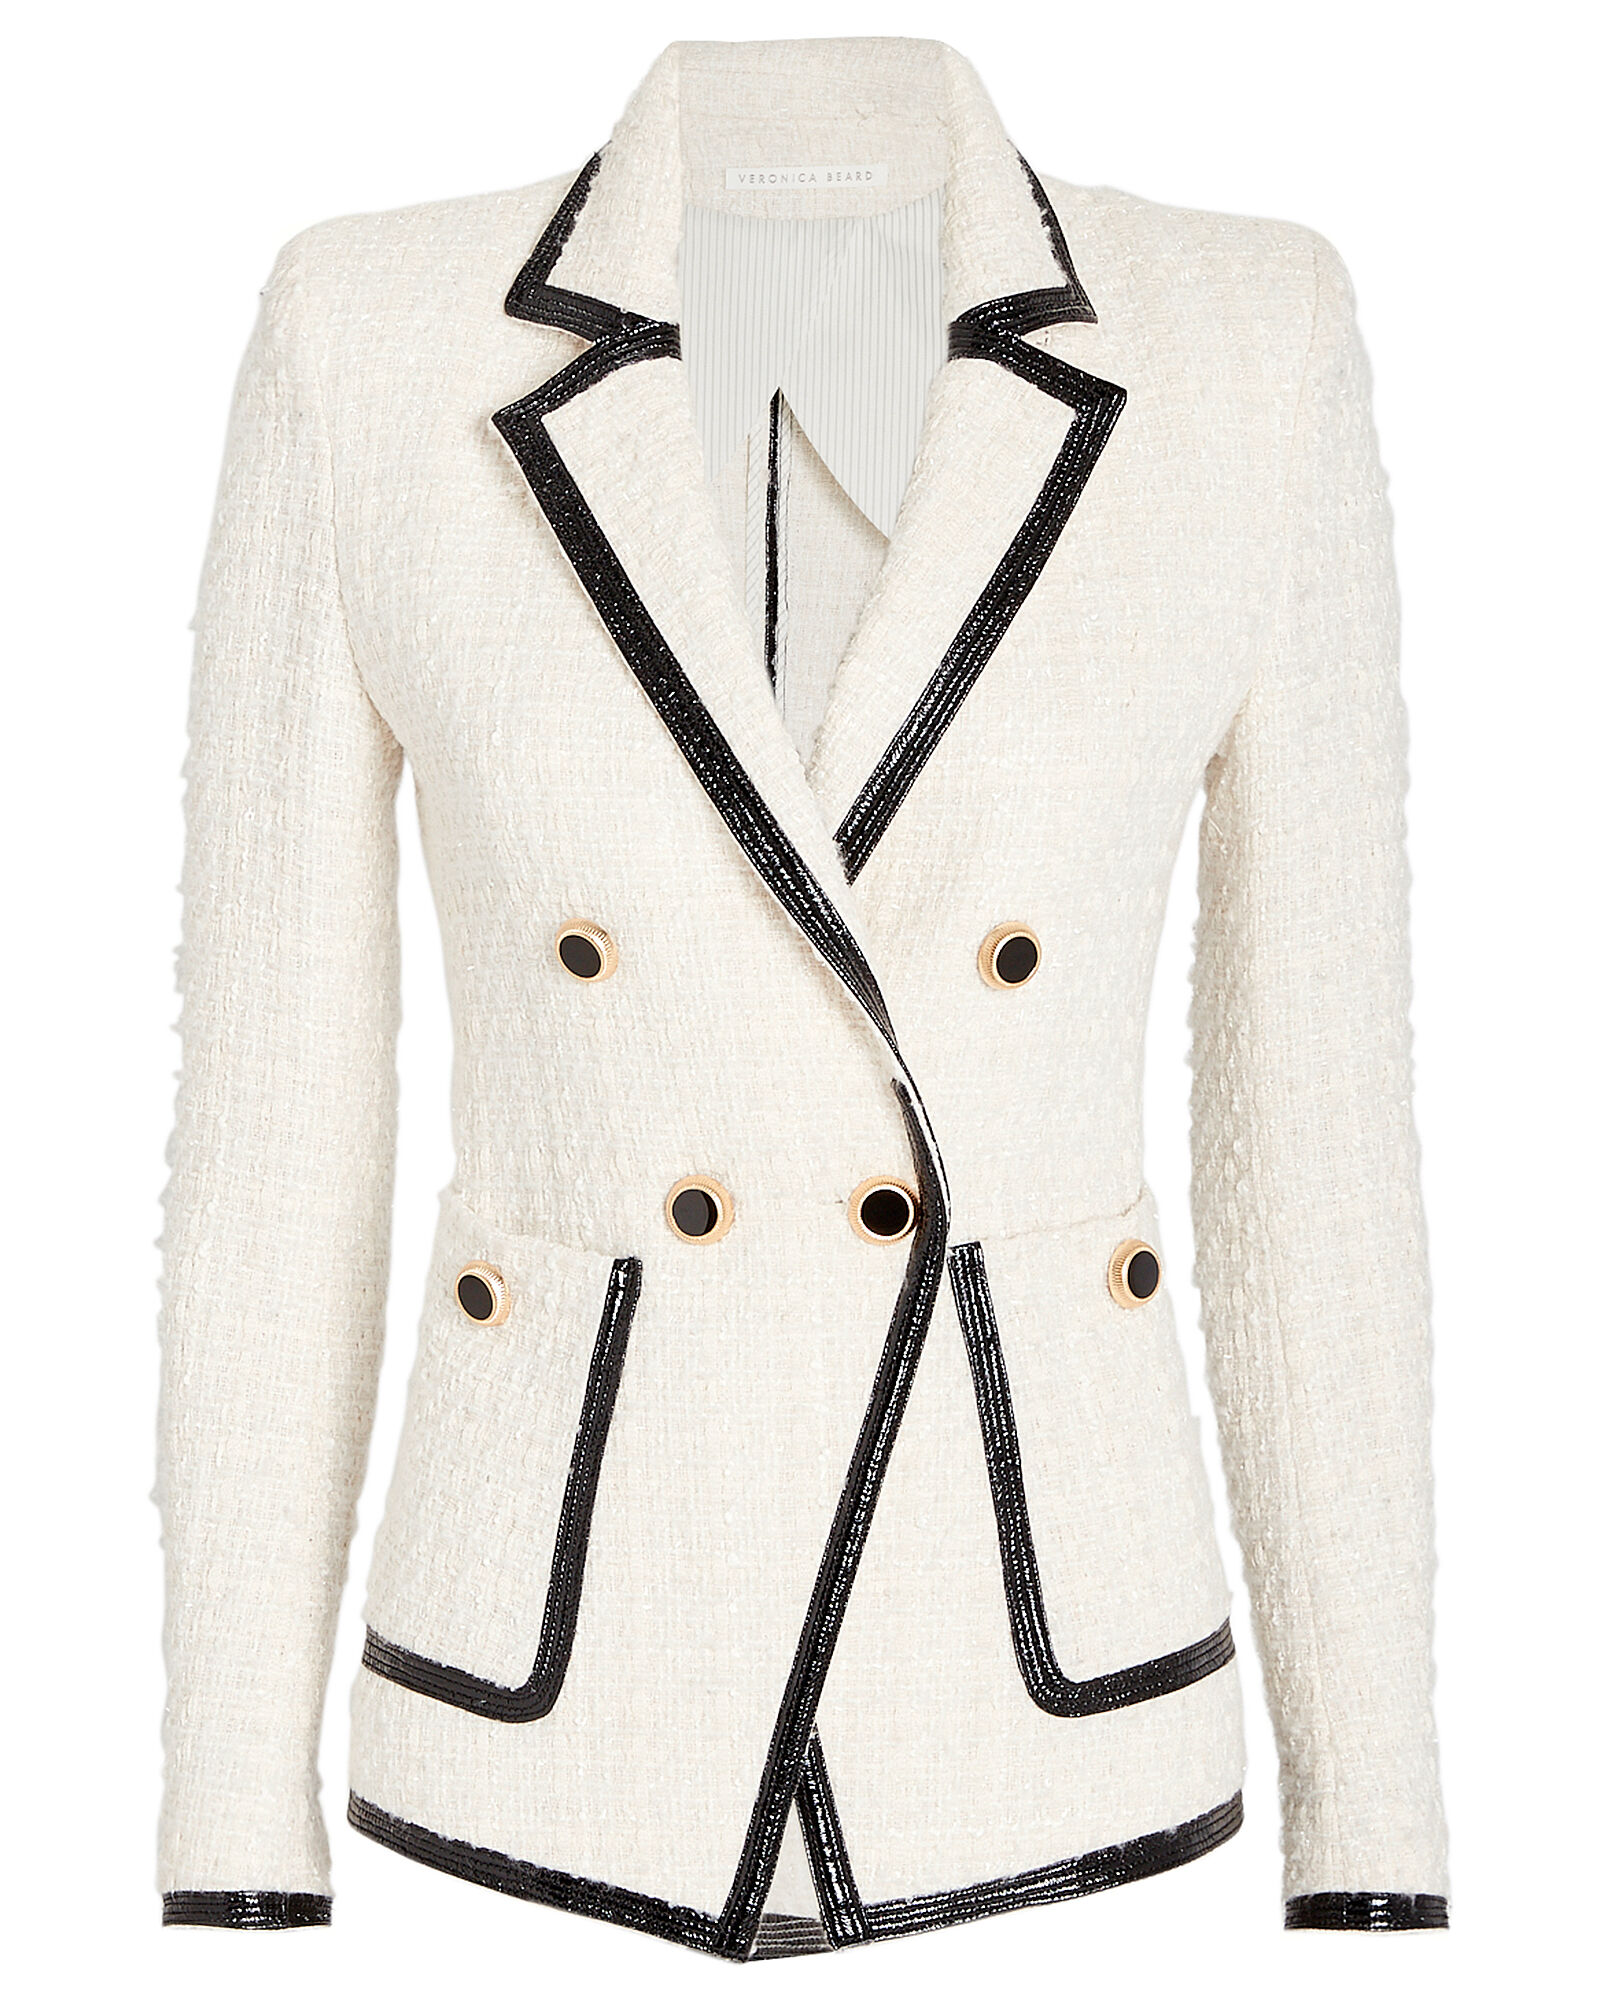 Cato Double Breasted Tweed Blazer, IVORY, hi-res